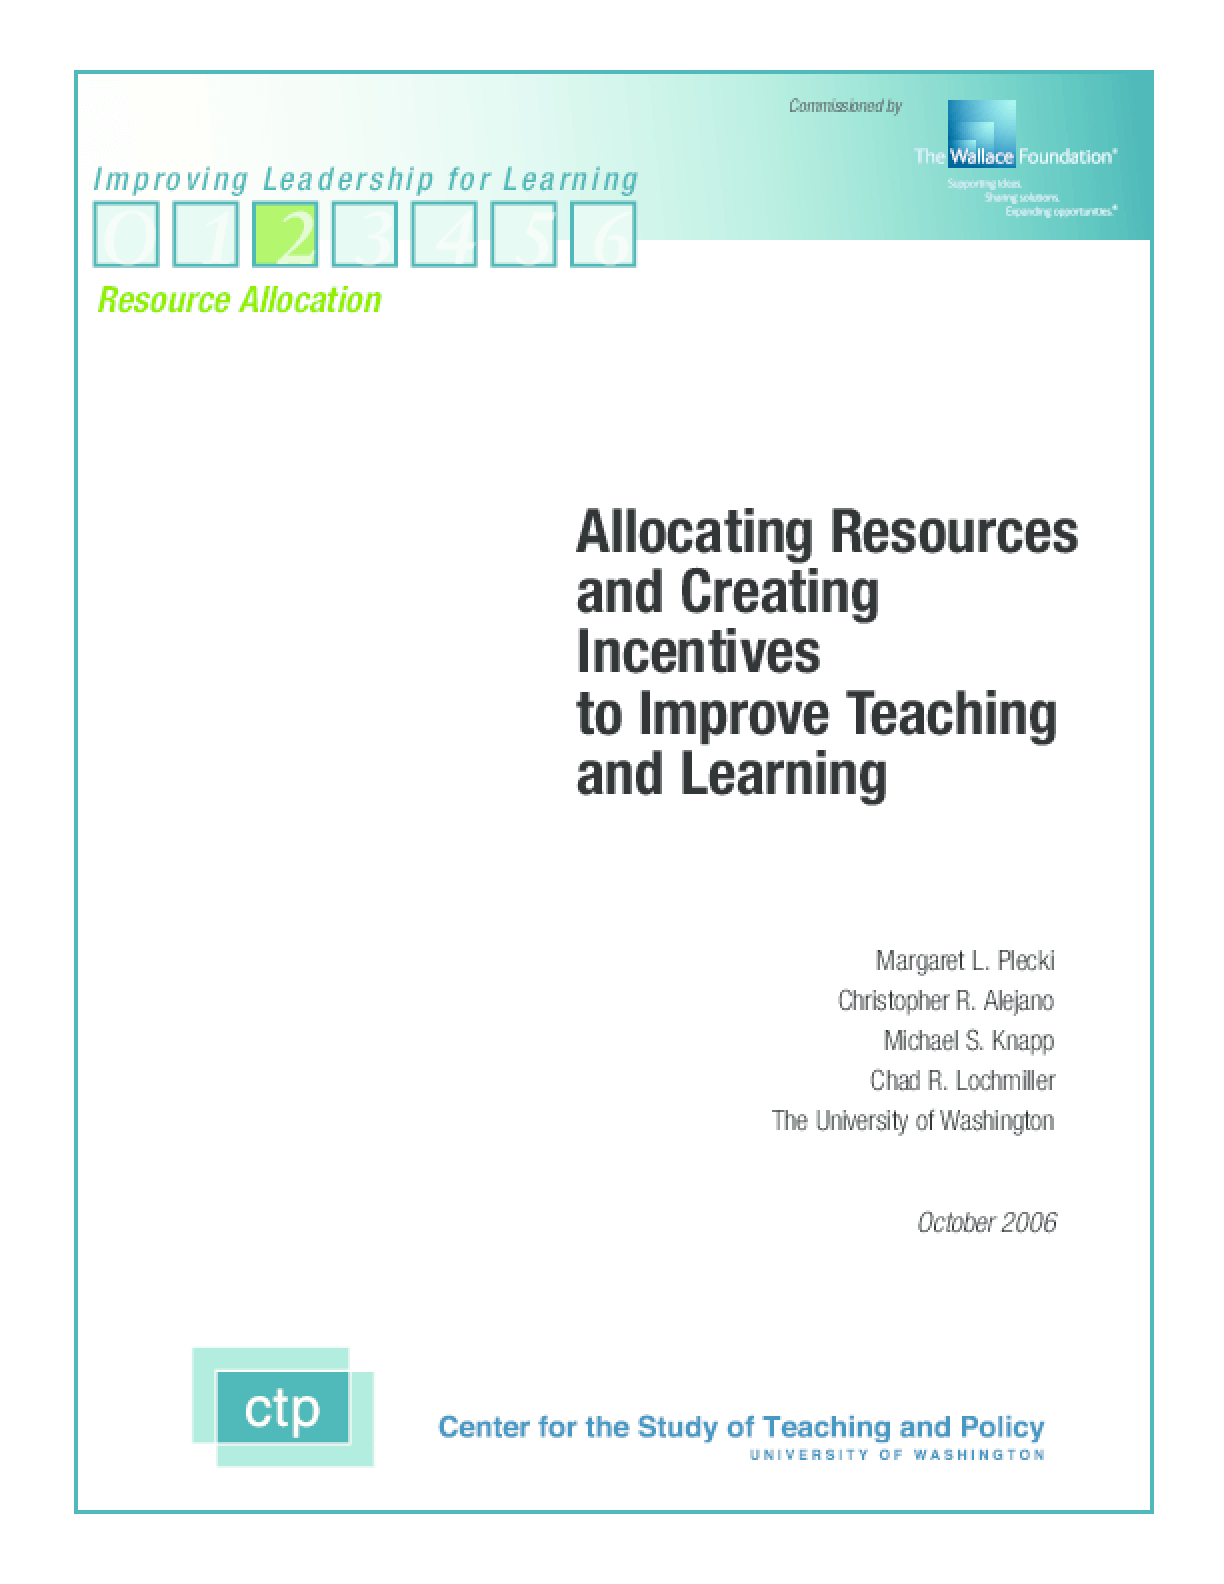 Allocating Resources and Creating Incentives to Improve Teaching and Learning